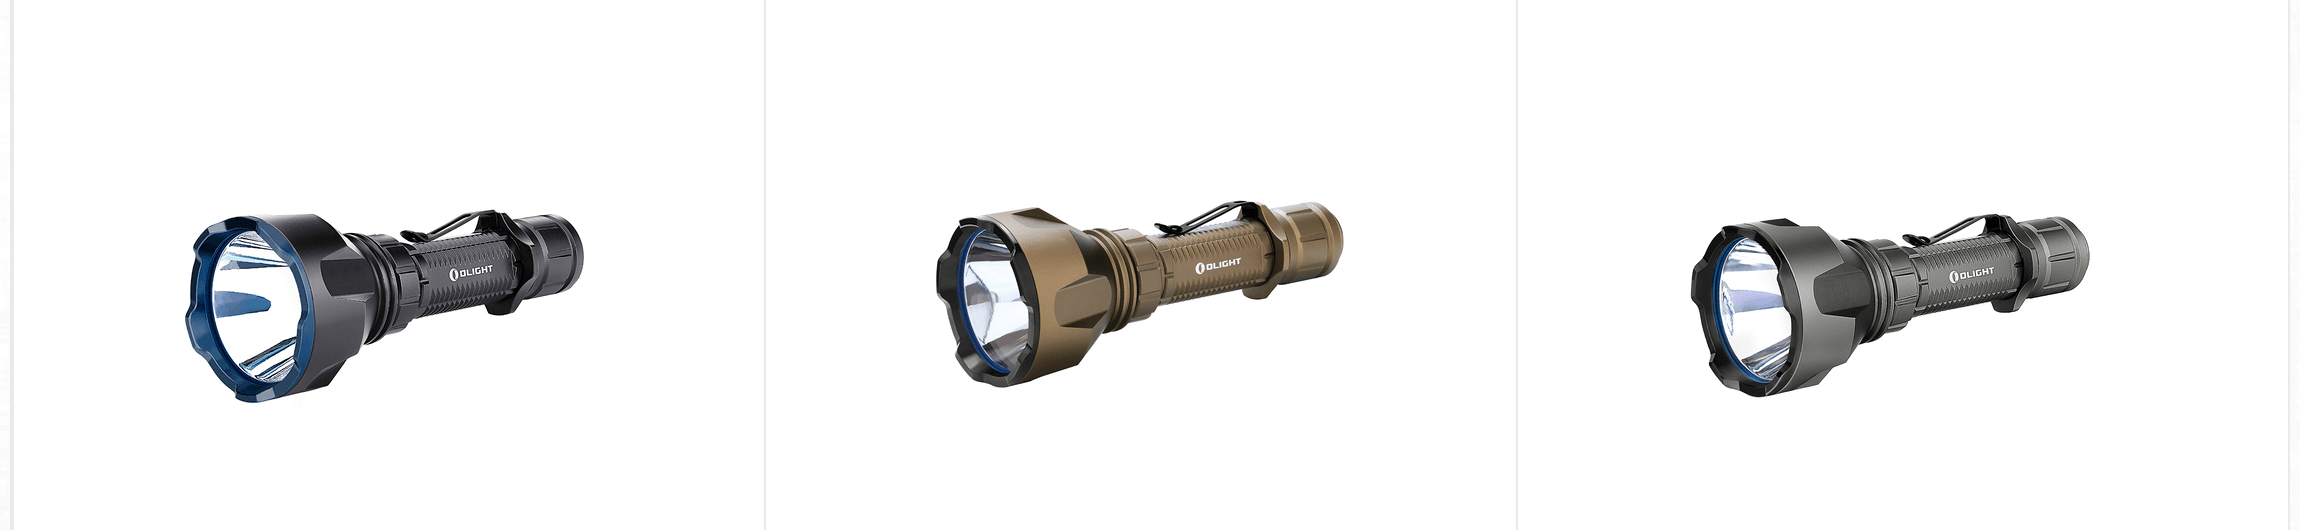 olight warrior x turbo desert tan flashlight versions